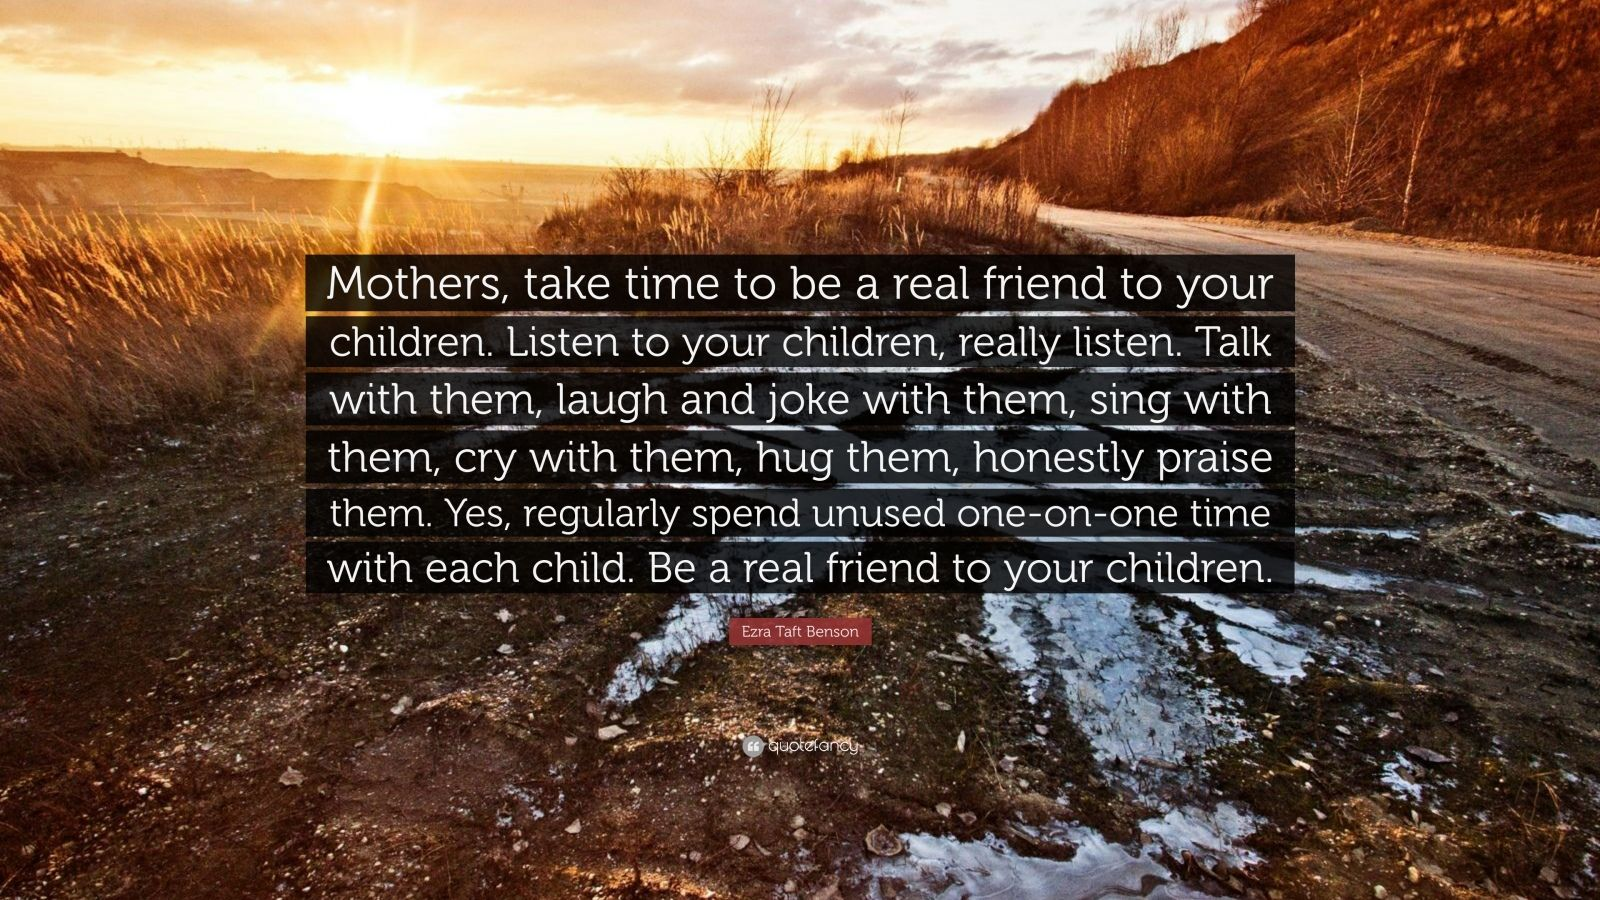 "Ezra Taft Benson Quote: ""Mothers, take time to be a real friend to your children. Listen to your children, really listen. Talk with them, laugh and joke with them, sing with them, cry with them, hug them, honestly praise them. Yes, regularly spend unused one-on-one time with each child. Be a real friend to your children."""